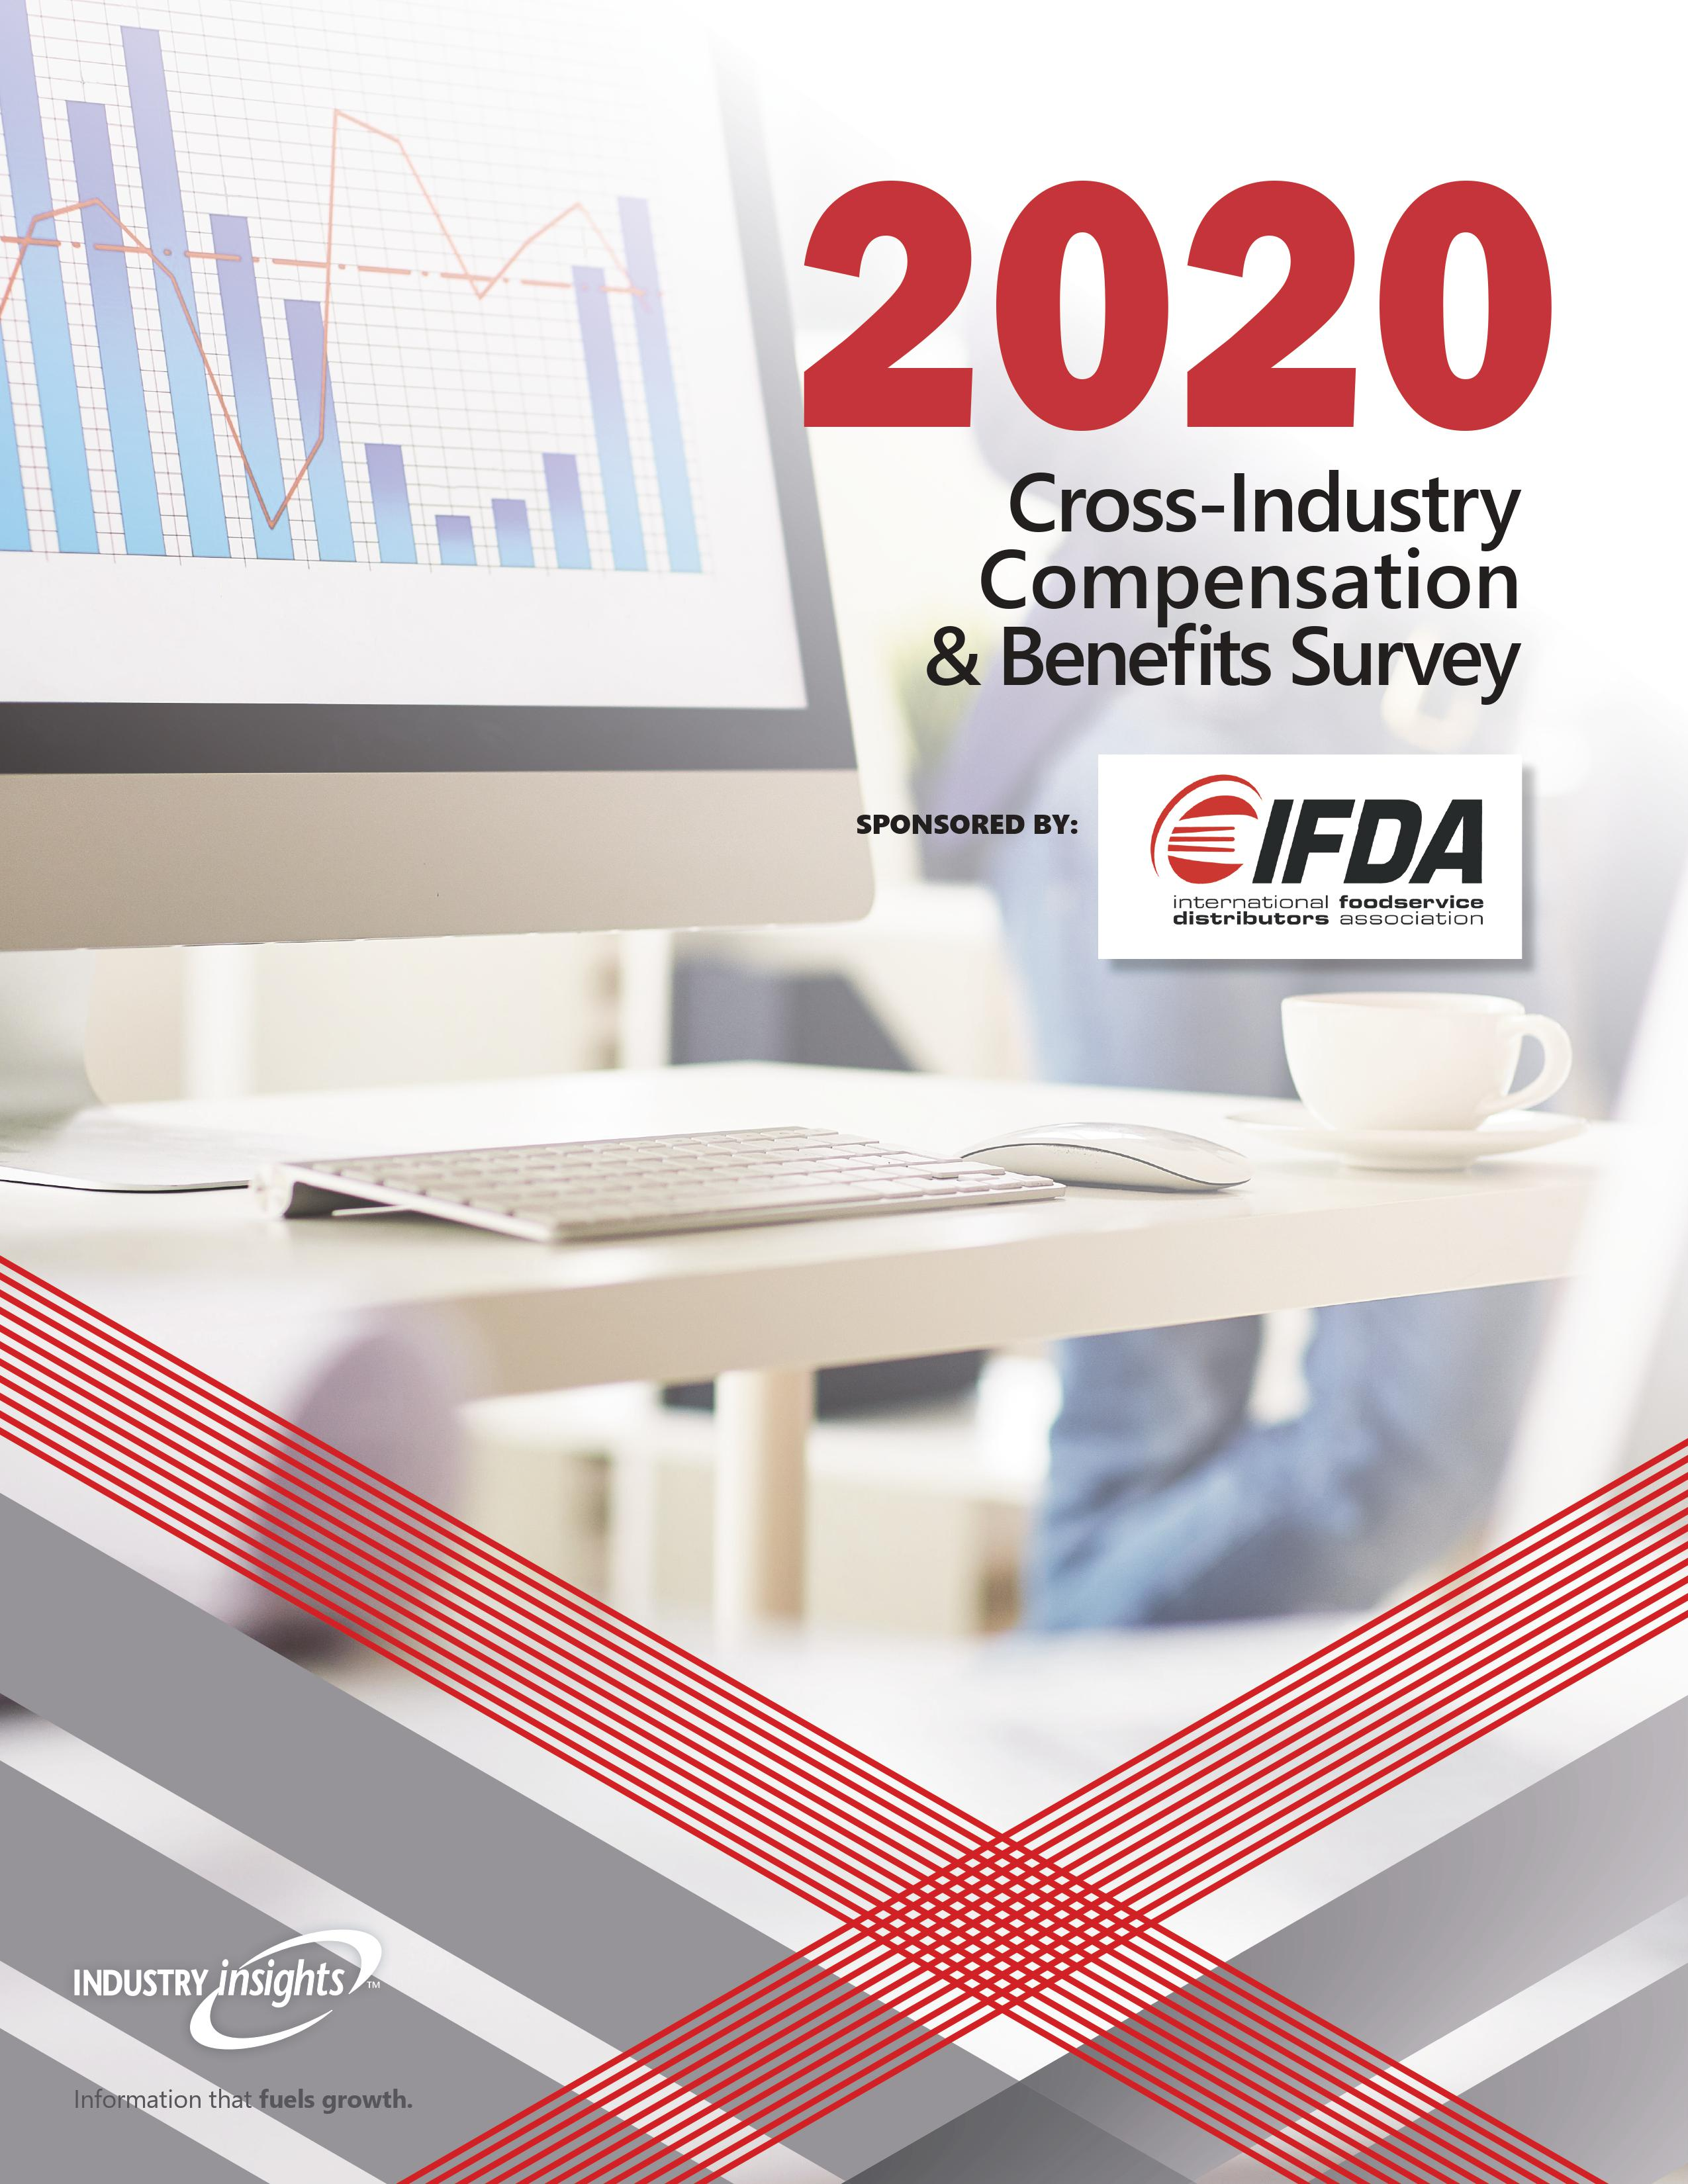 Thumbnail of 2020 Cross-Industry Compensation & Benefits Survey